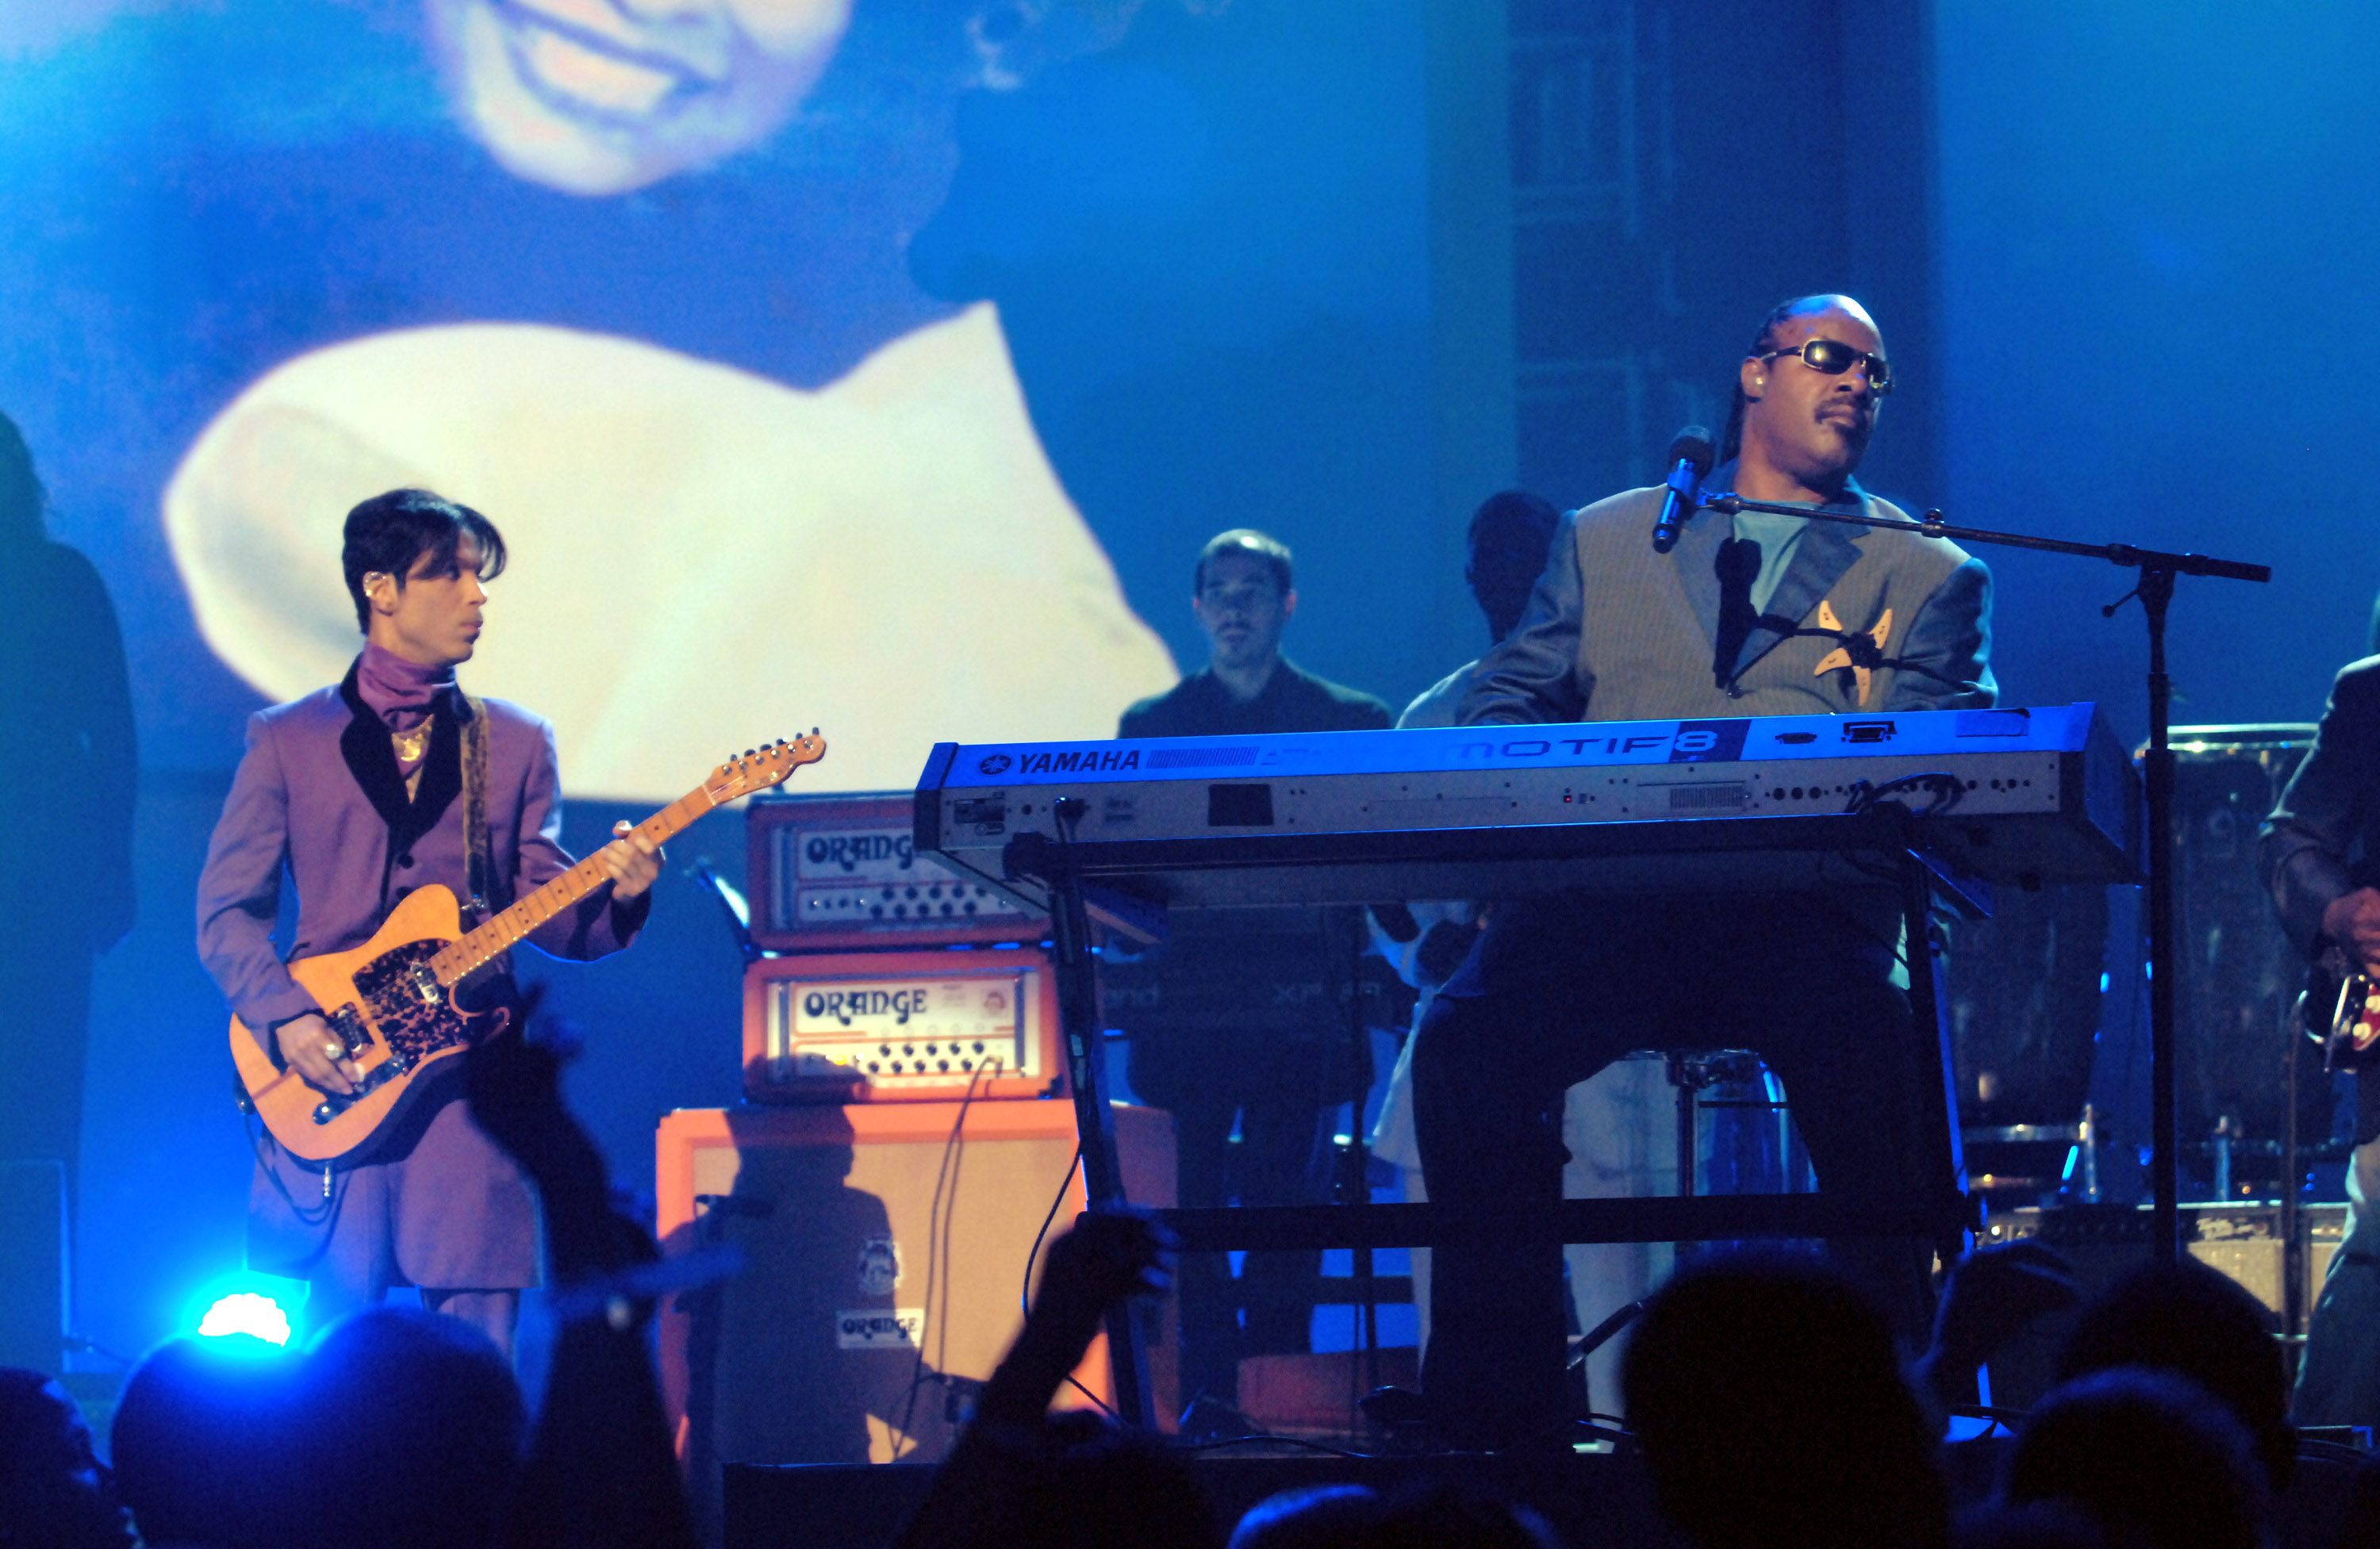 Prince and Stevie Wonder perform  Through the Fire  at the 6th Annual BET Awards in 2006.